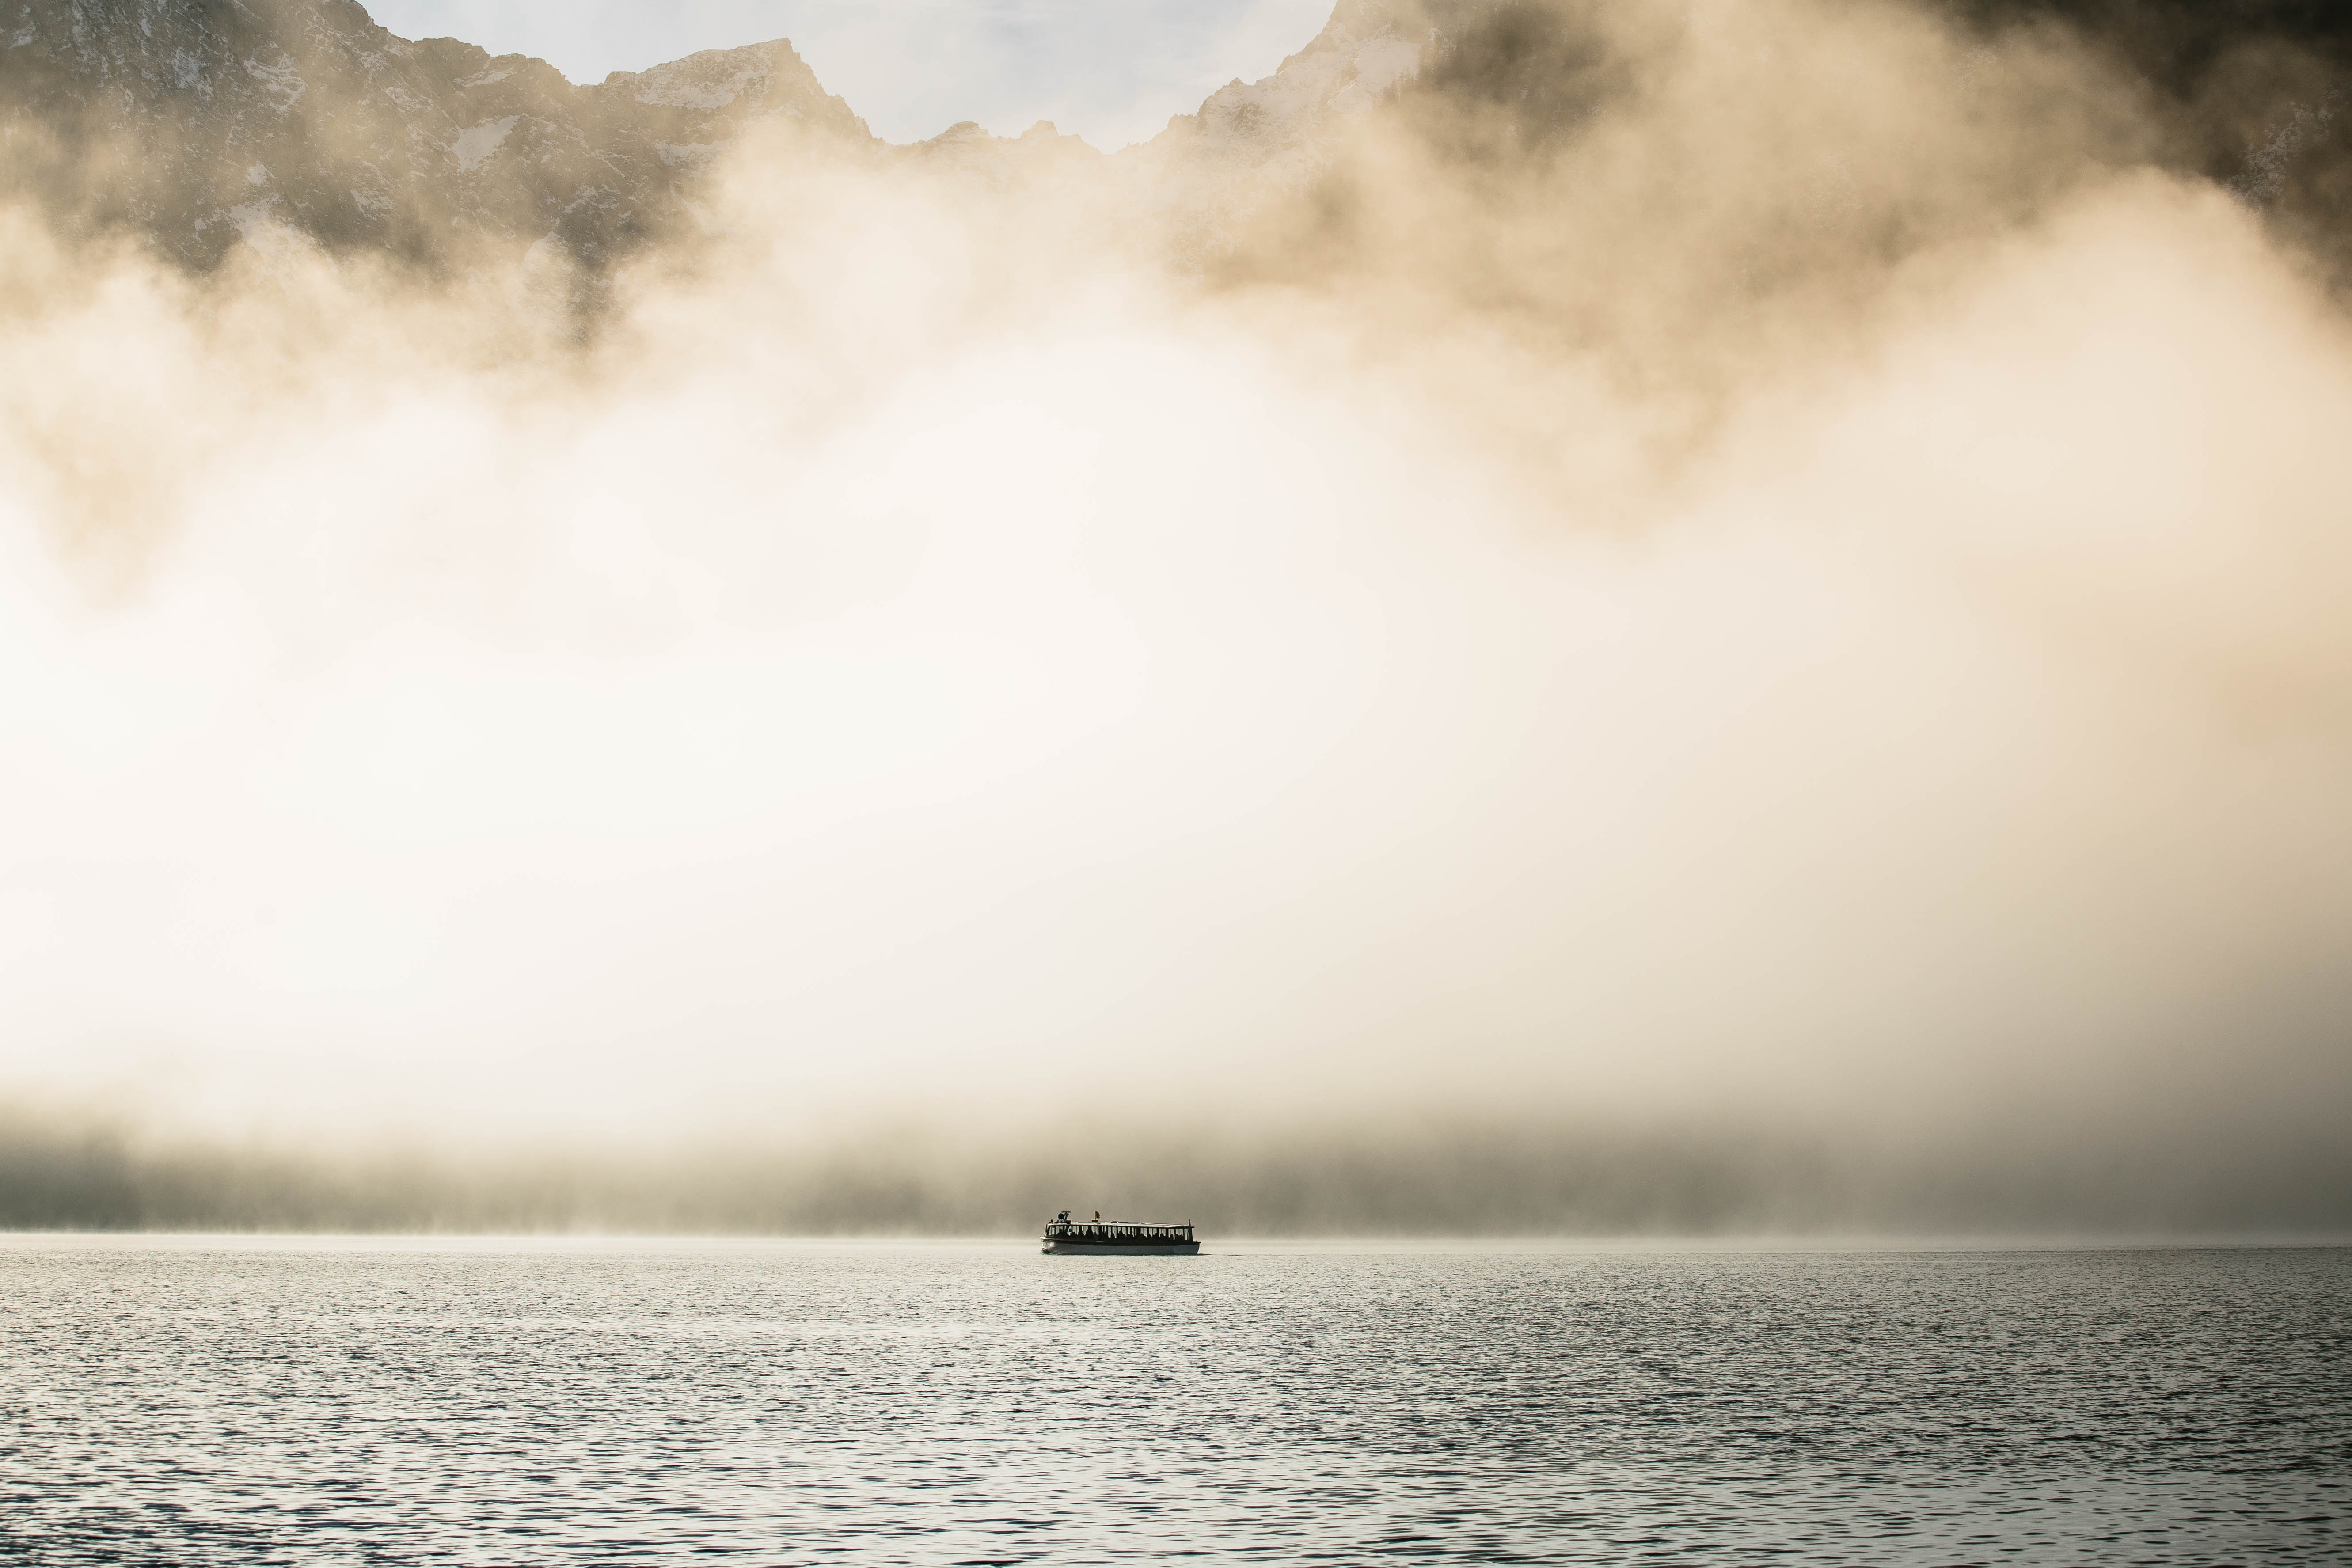 passenger boat under white clouds during daytime